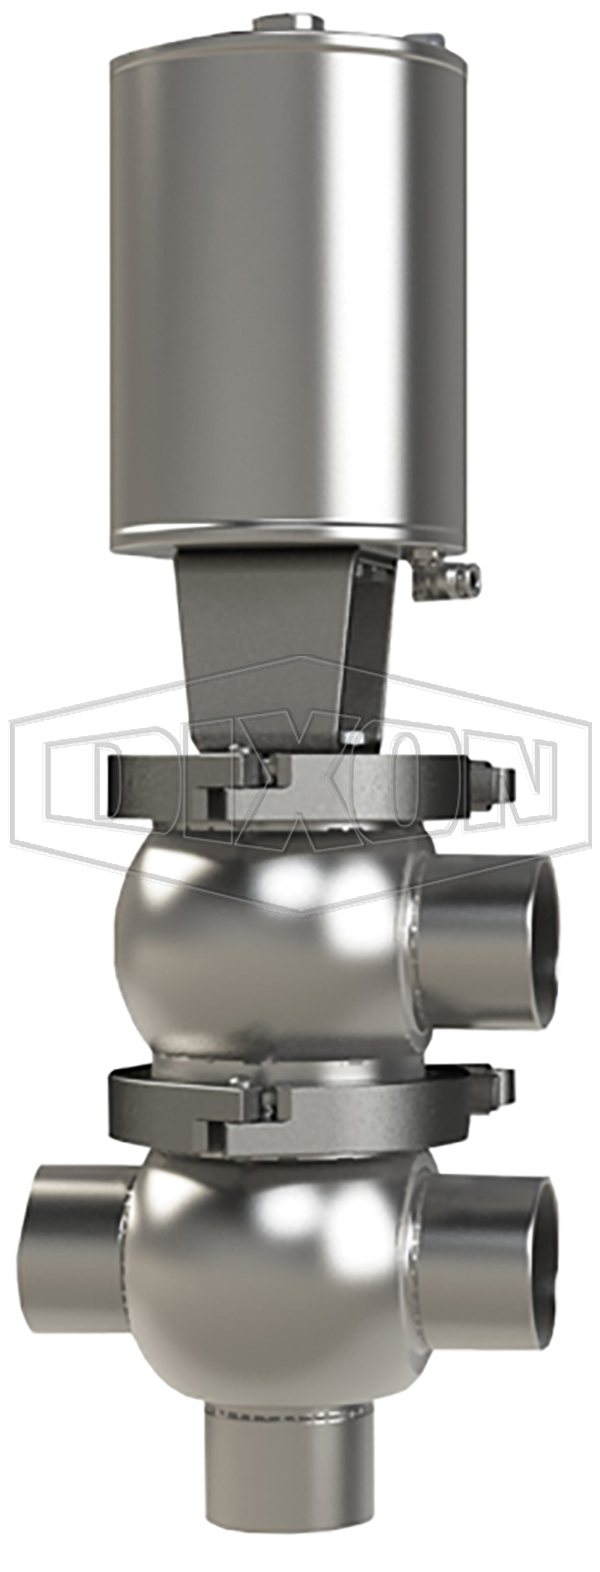 SSV Series Single Seat Valve, Divert LT Body, Weld, Spring Return Actuator (Air-To-Raise)